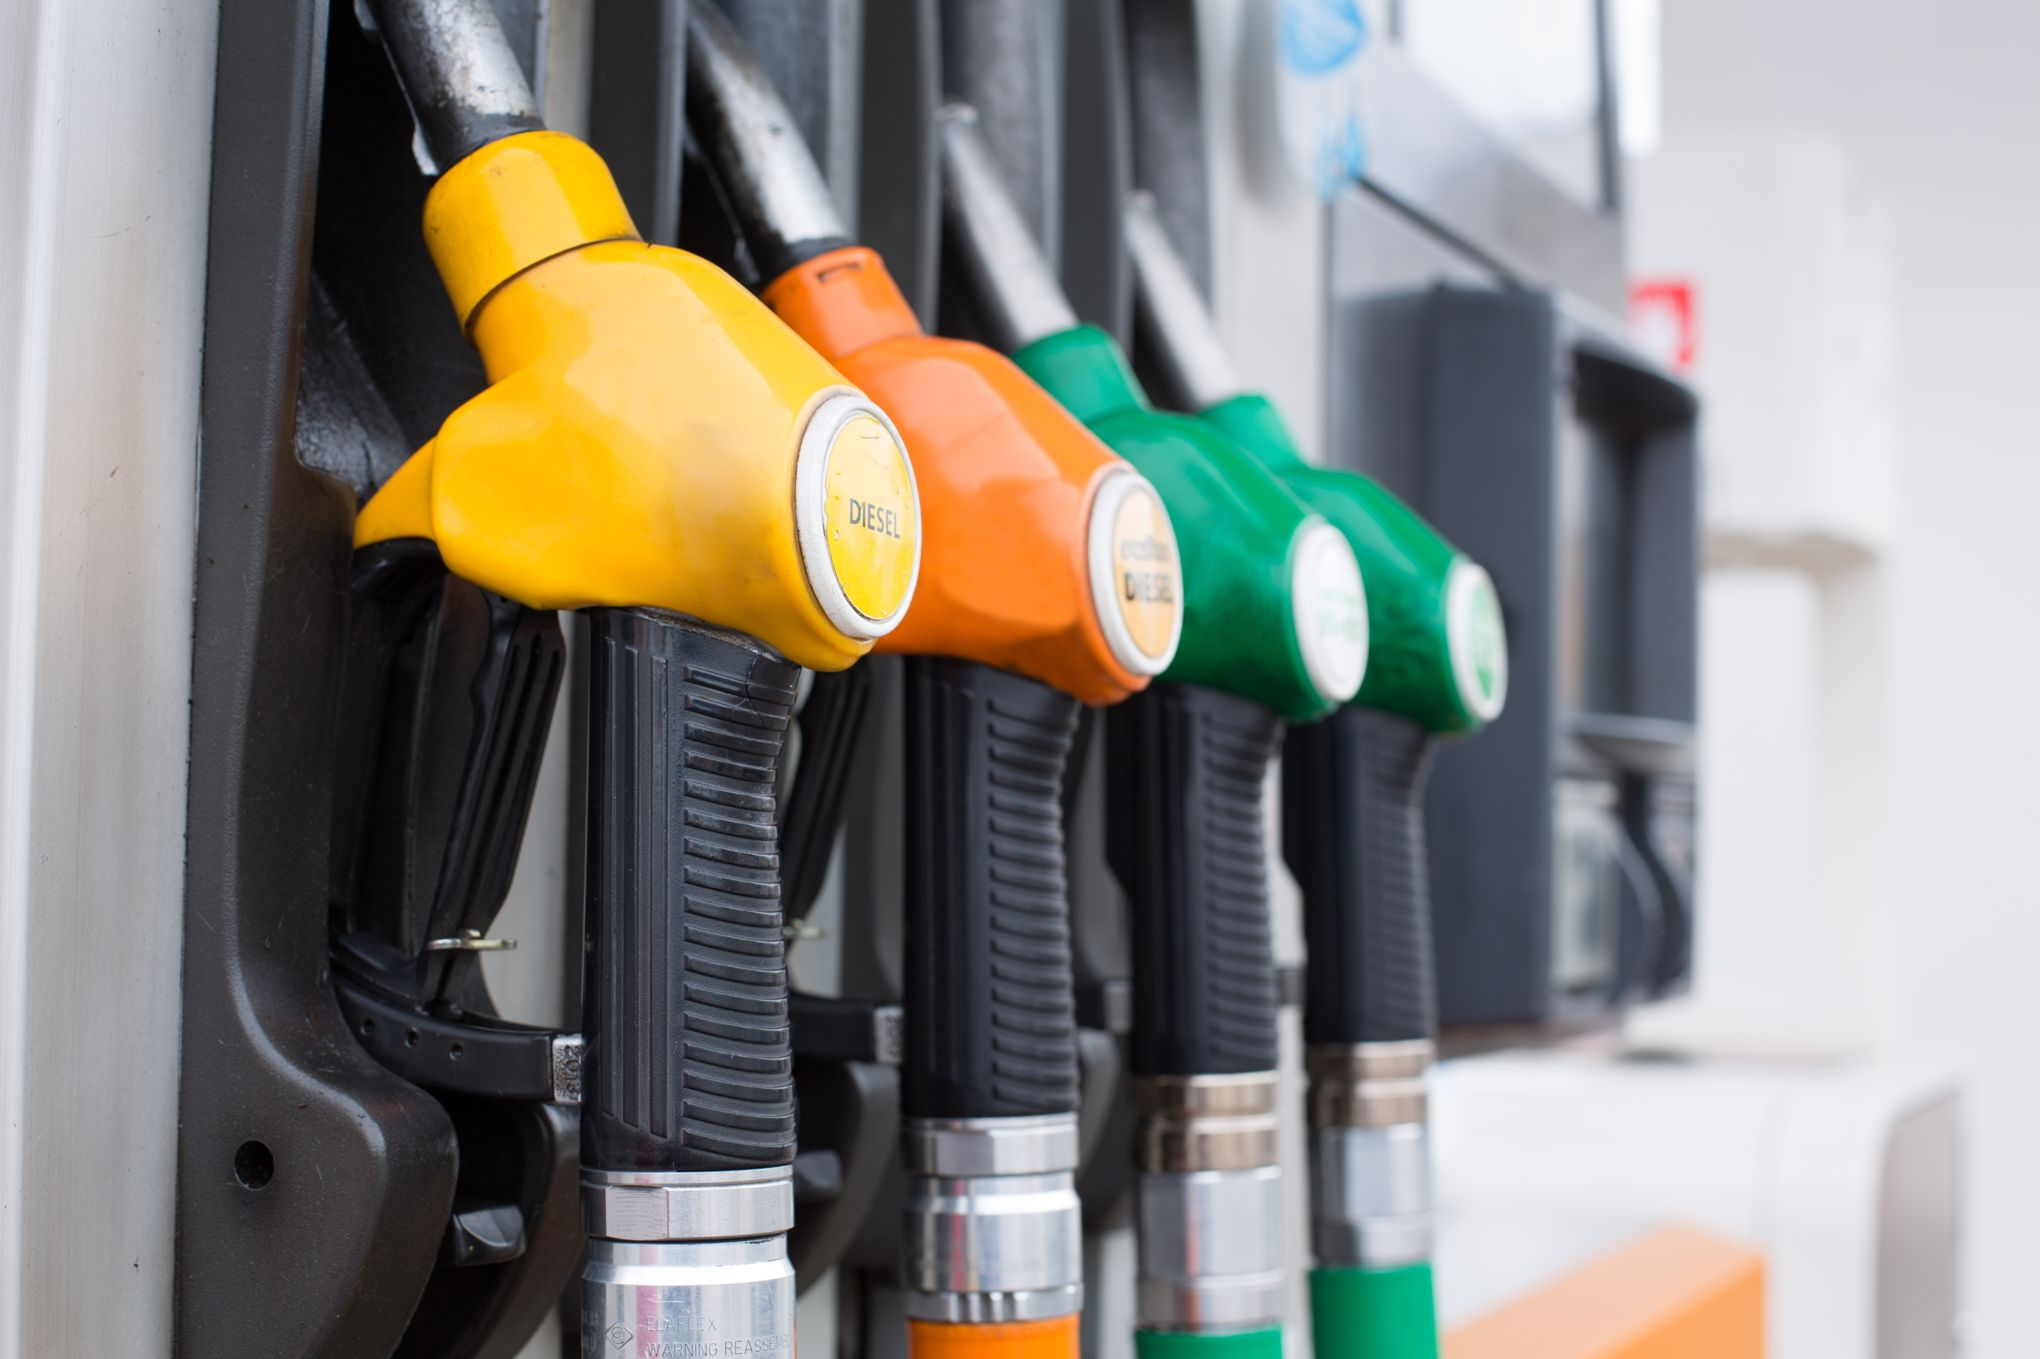 Les carburants changent de nom dans les stations essence en octobre 2018 !